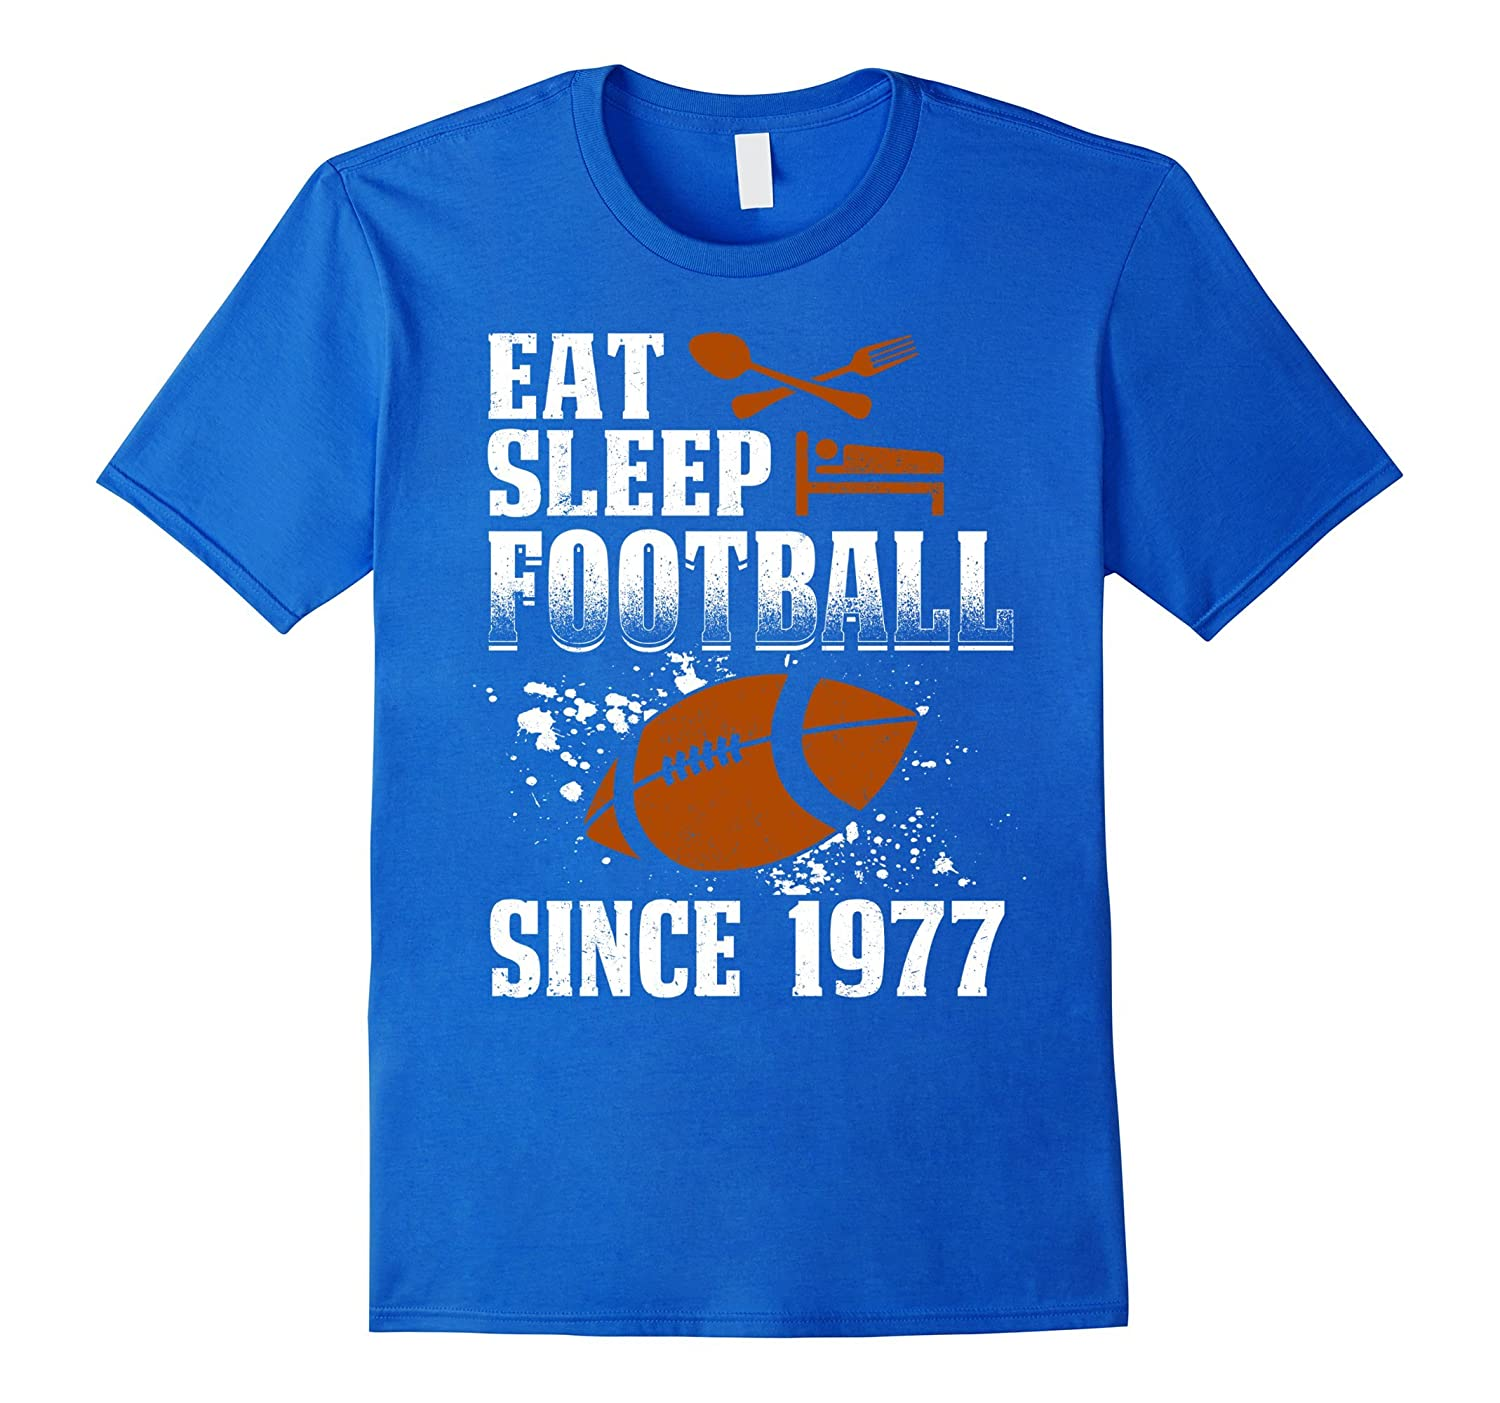 Eat Sleep Football Since 1977 T-shirt 40 Years Old Birthday-TJ